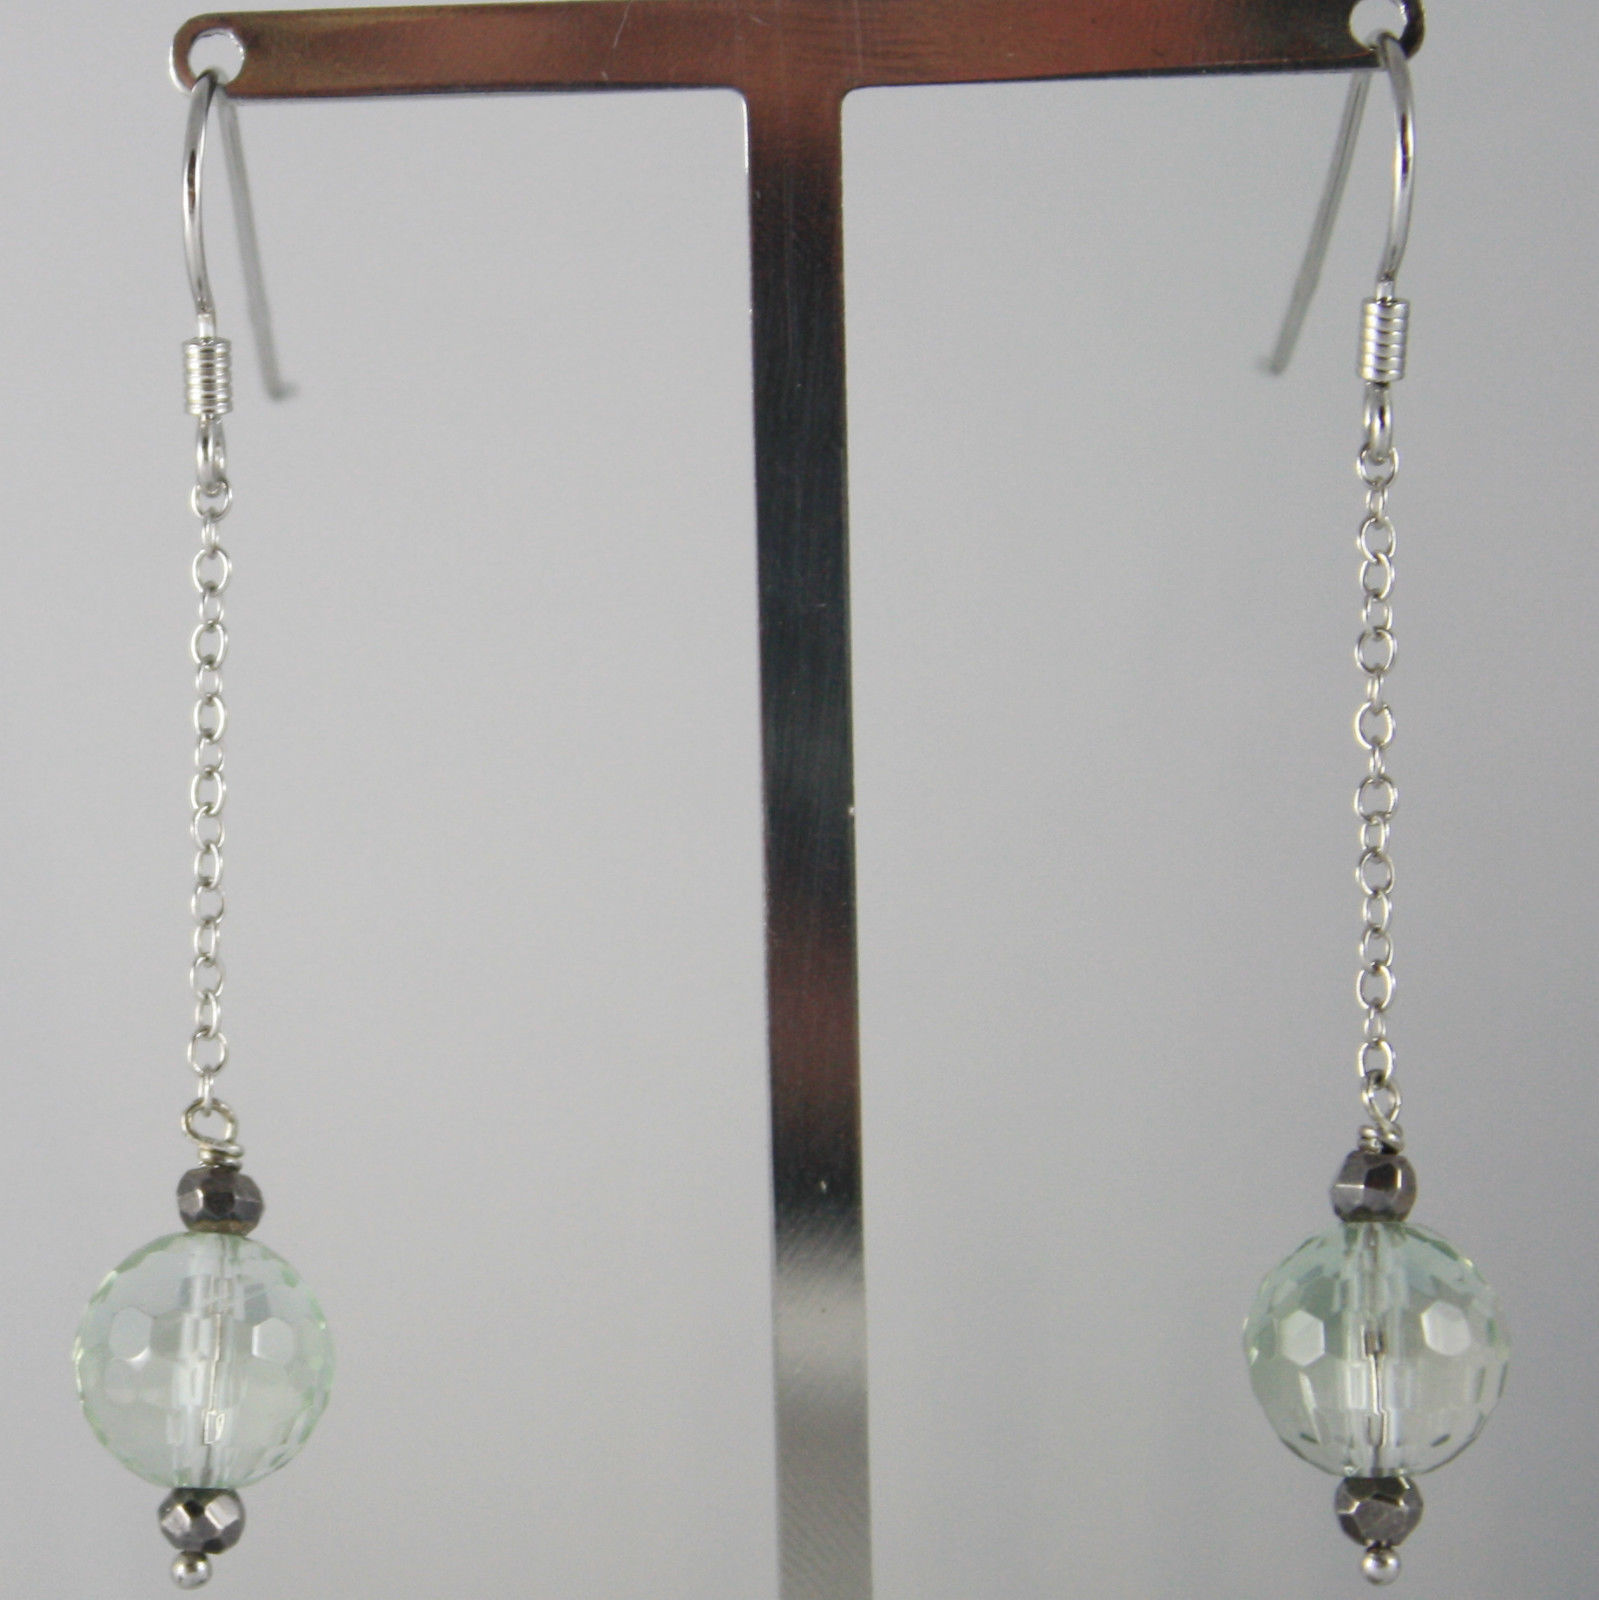 925 SILVER RHODIUM PENDANT EARRINGS, PRASIOLITE & PYRITE